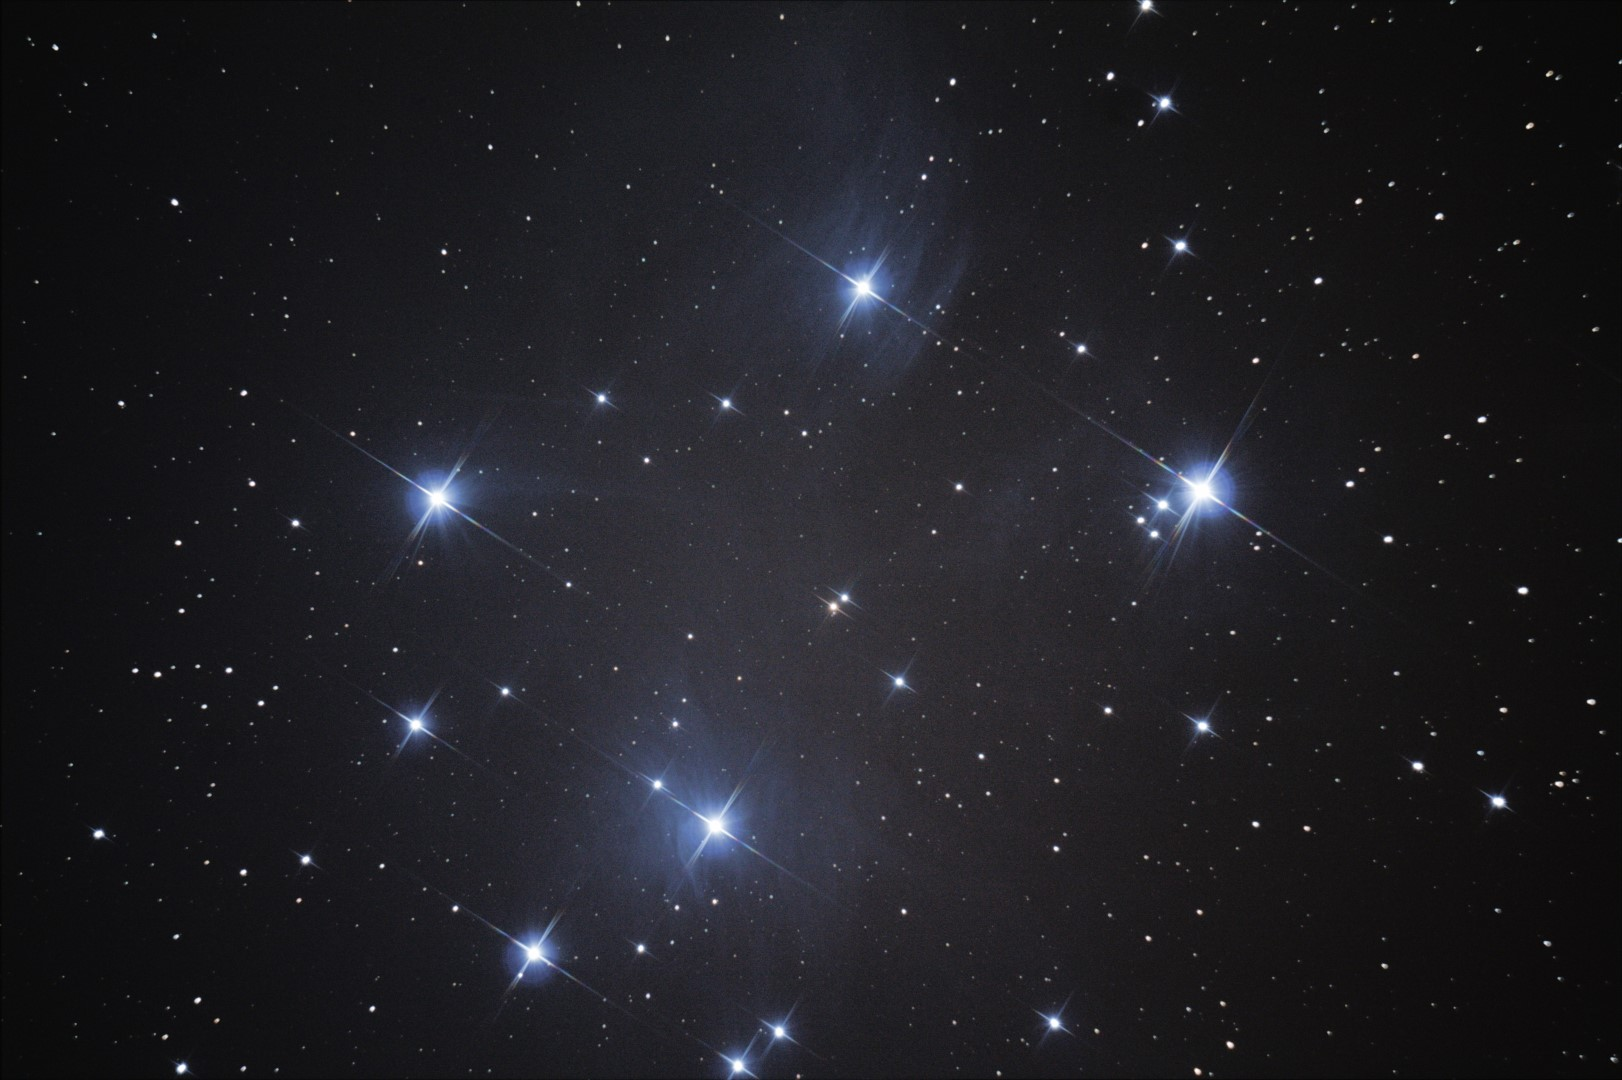 Astrophotography Pleiades Reflection Nebula M45 By Mathias Sorg